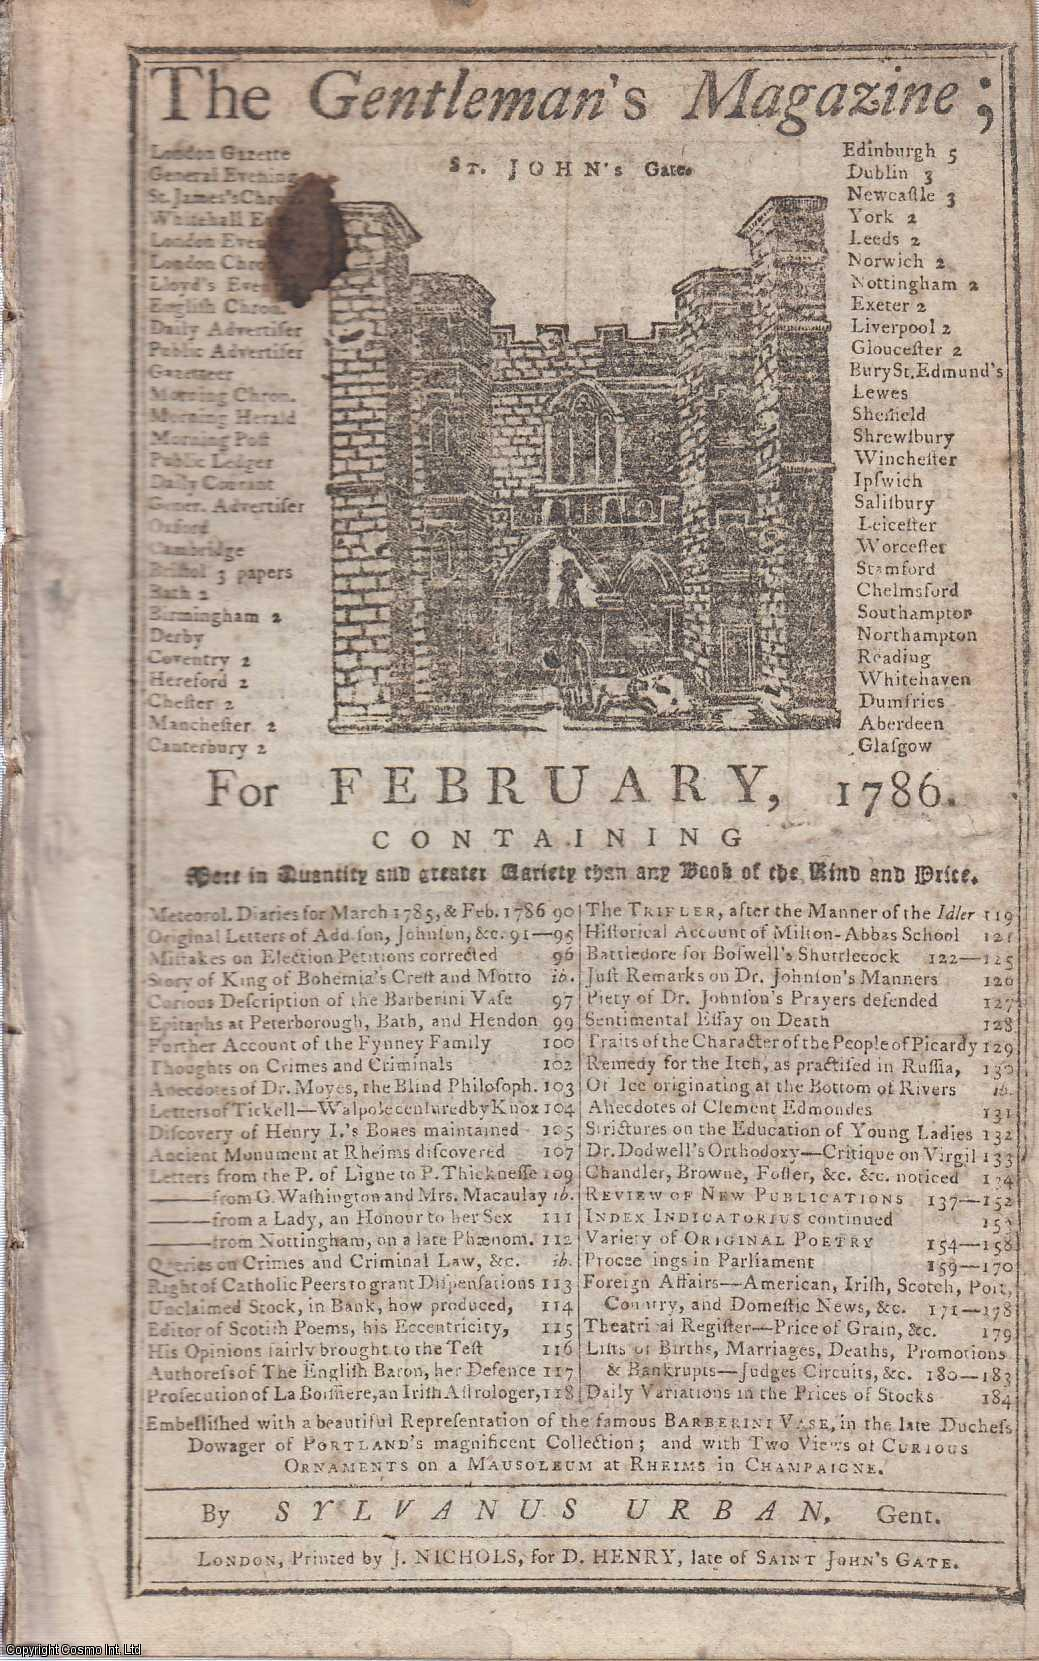 The Gentleman's Magazine for February 1786.  FEATURING One Plate of Curious Ornaments on a Mausoleum in Rheims., Urban, Sylvanus.